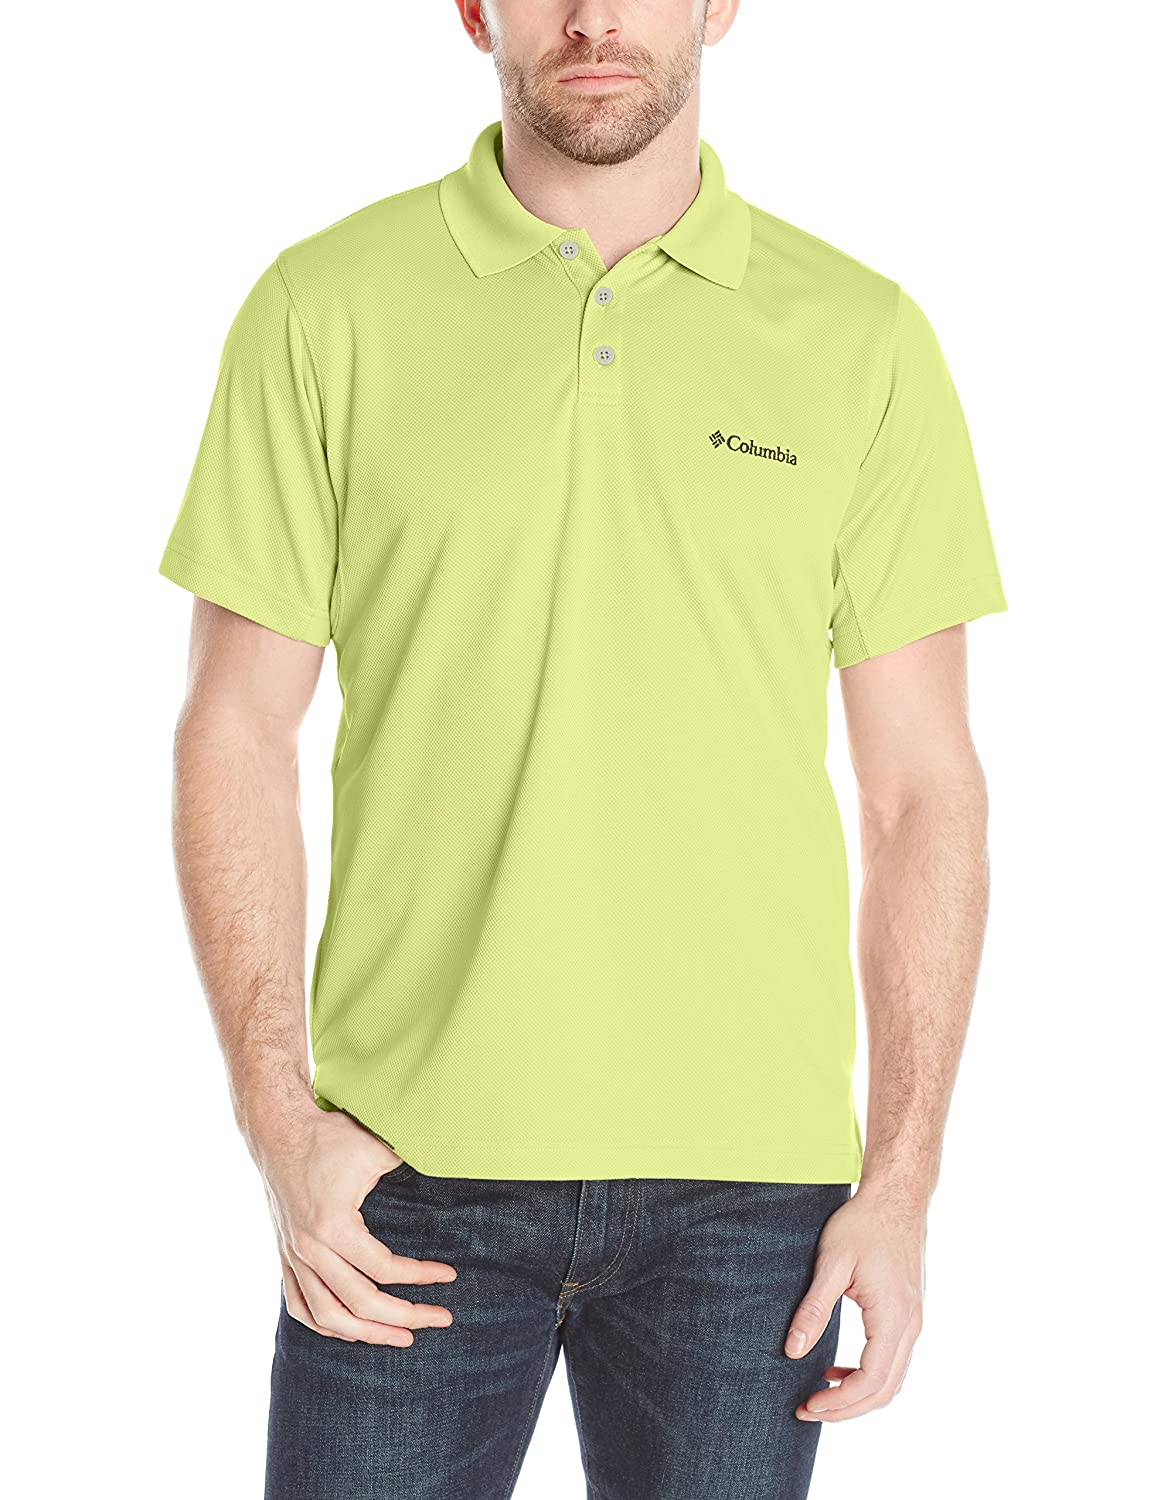 94c0ade4a2f Columbia Men's New Utilizer Polo Shirt at Amazon Men's Clothing store: